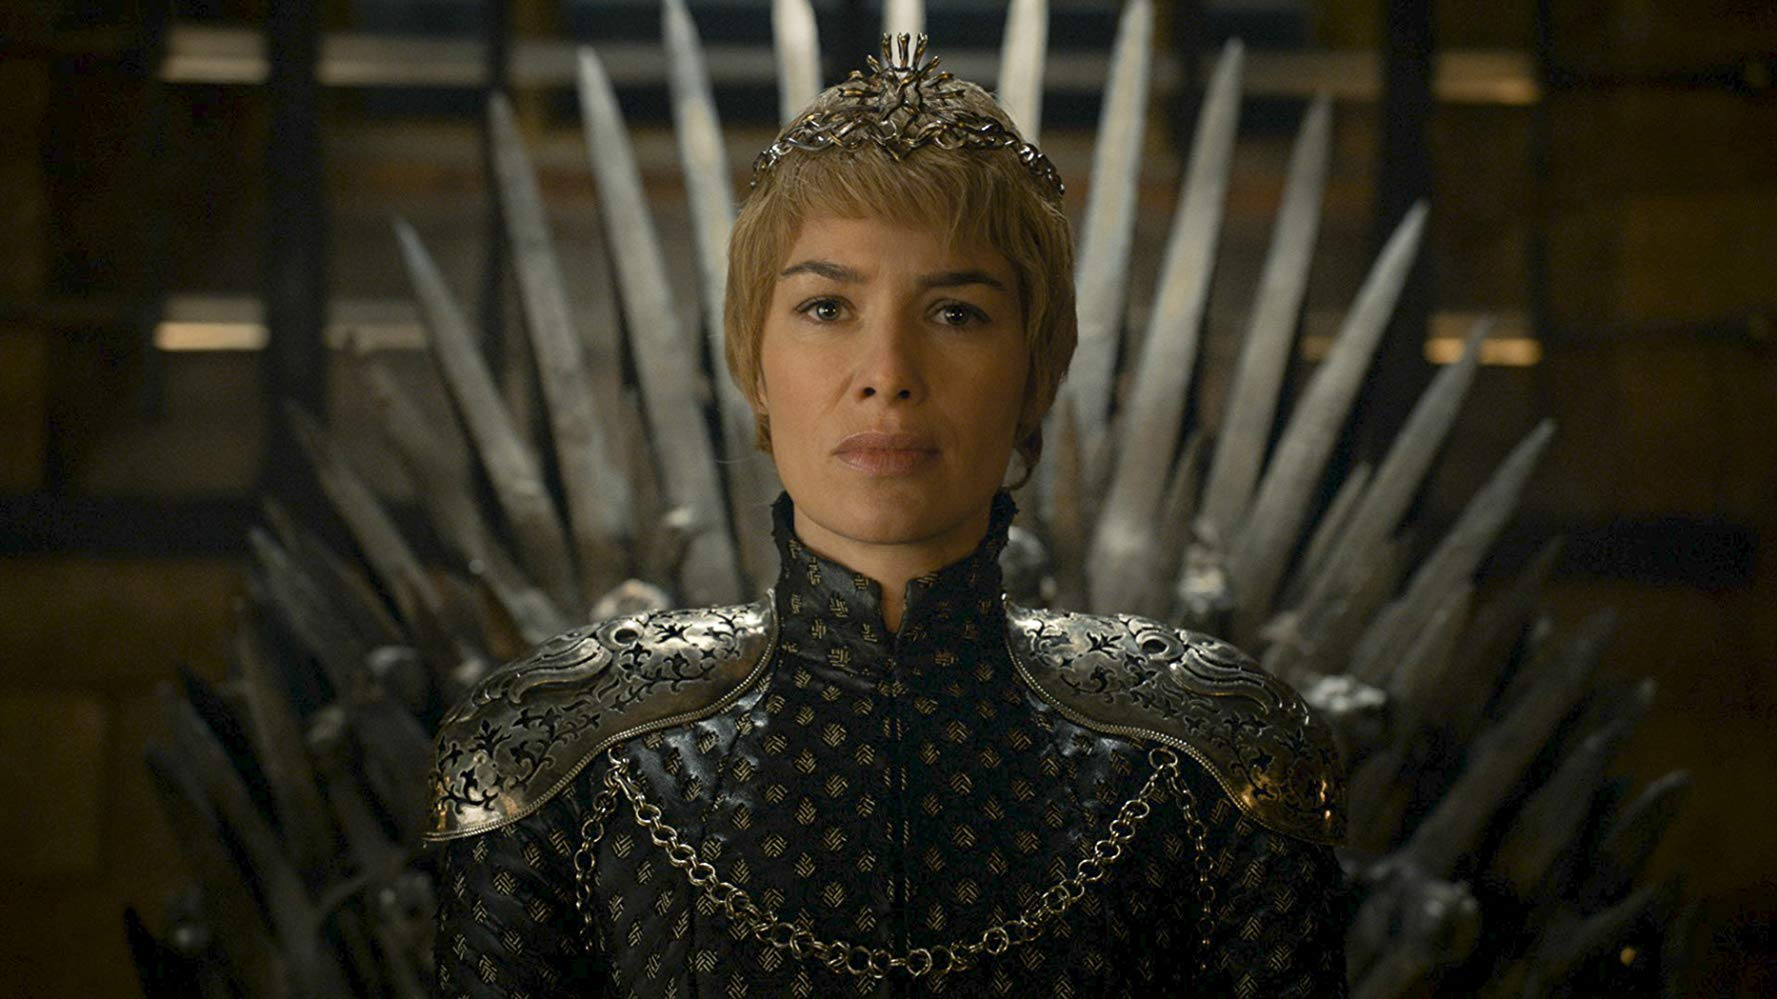 Lena Headey as Cersei Lannister in 'Game of Thrones'. (Source: IMDB)